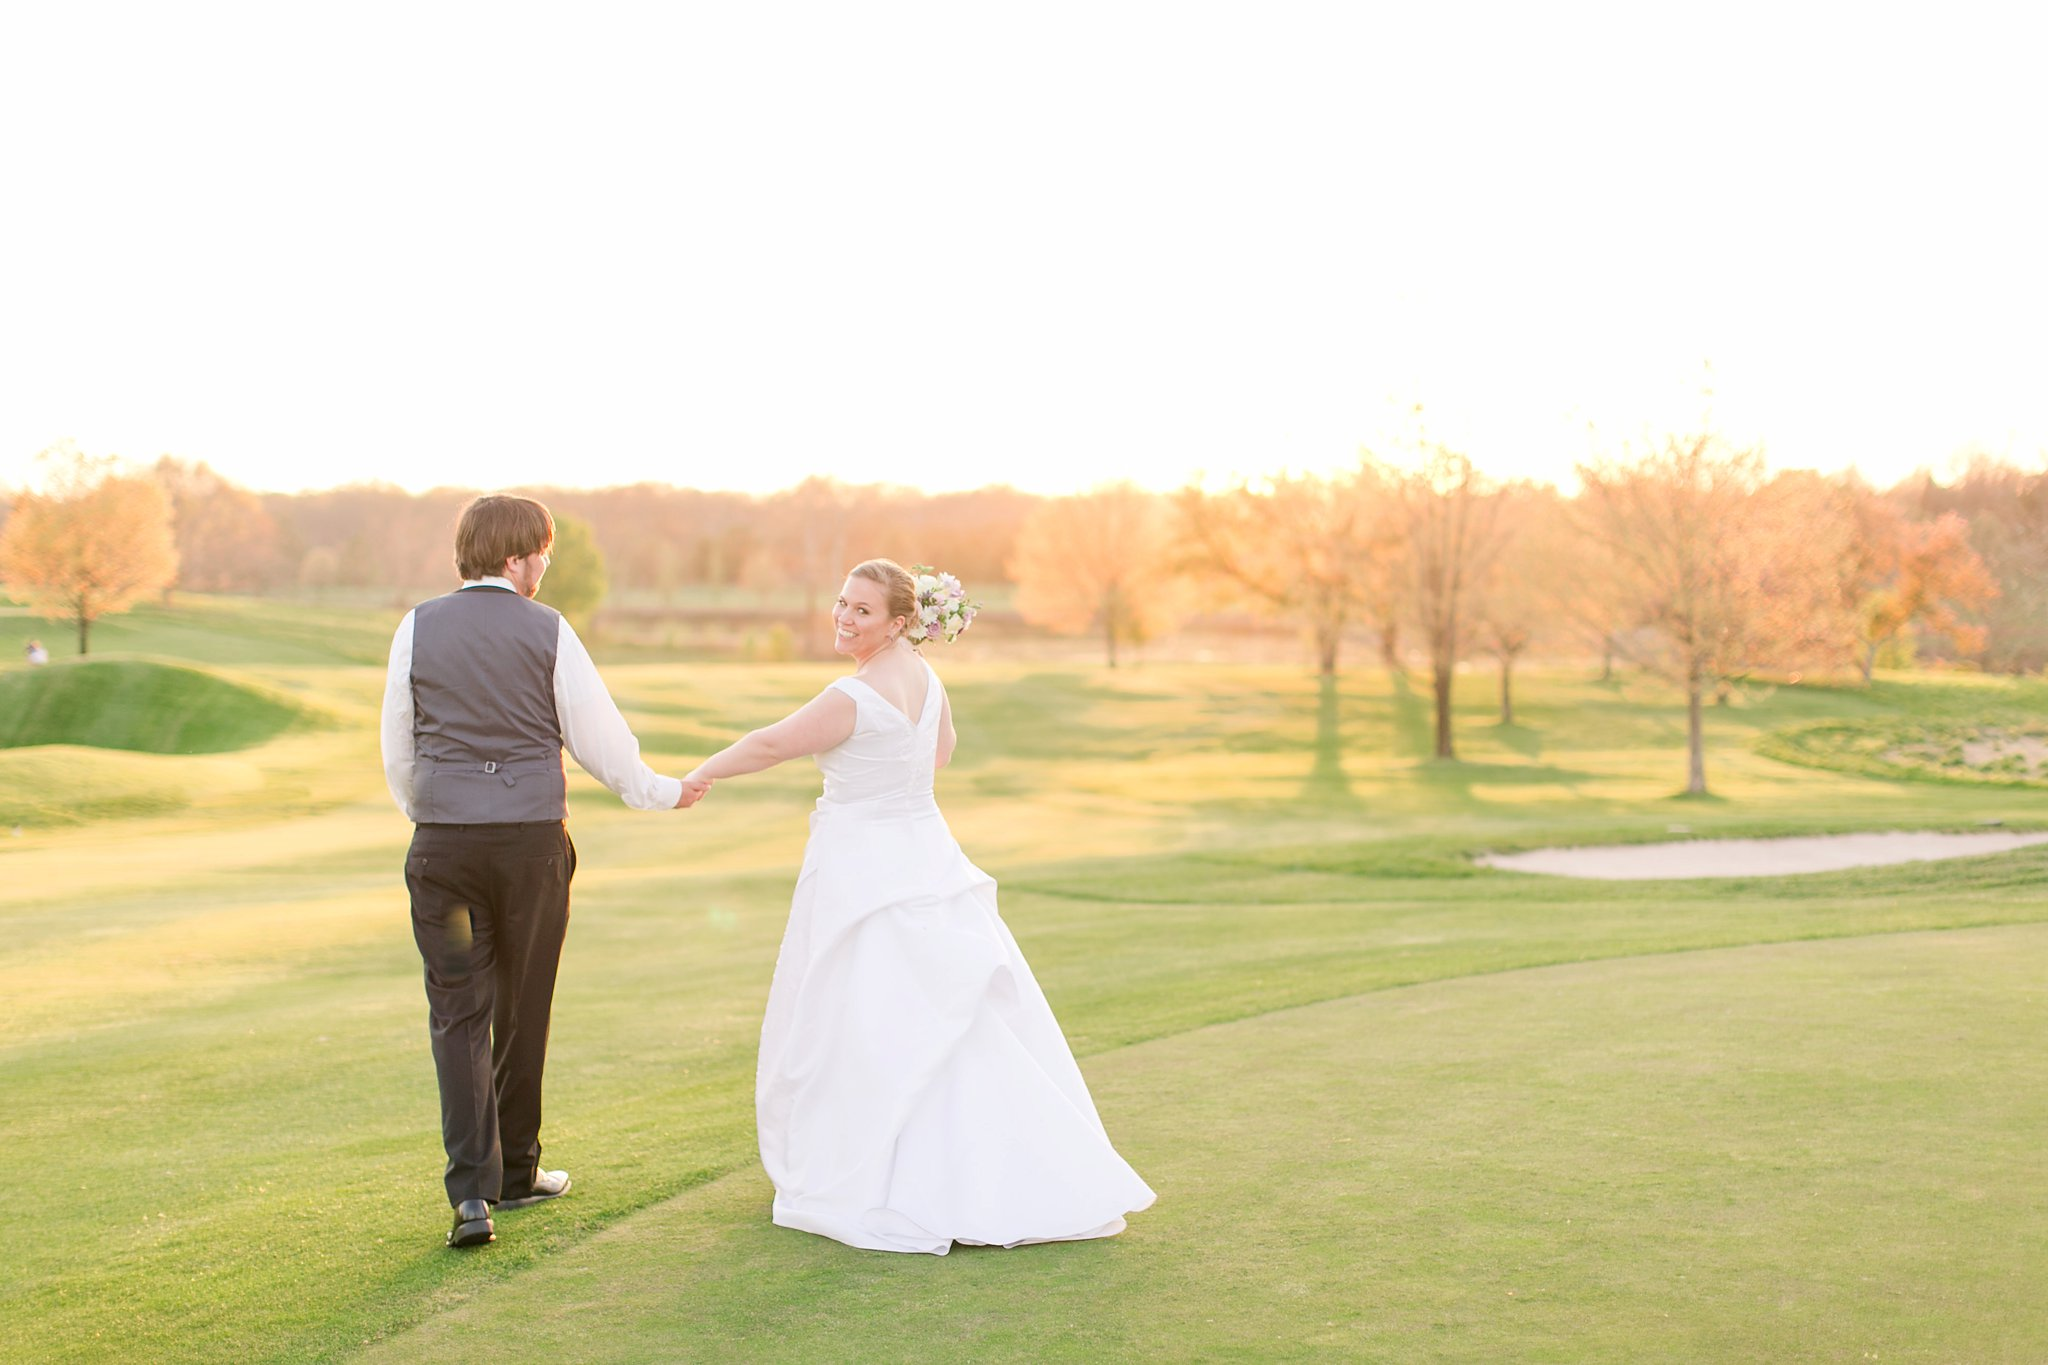 Chantilly National Golf Club Wedding Photos Virginia Wedding Photographer Megan Kelsey Photography Mary Beth and Nathan-113.jpg